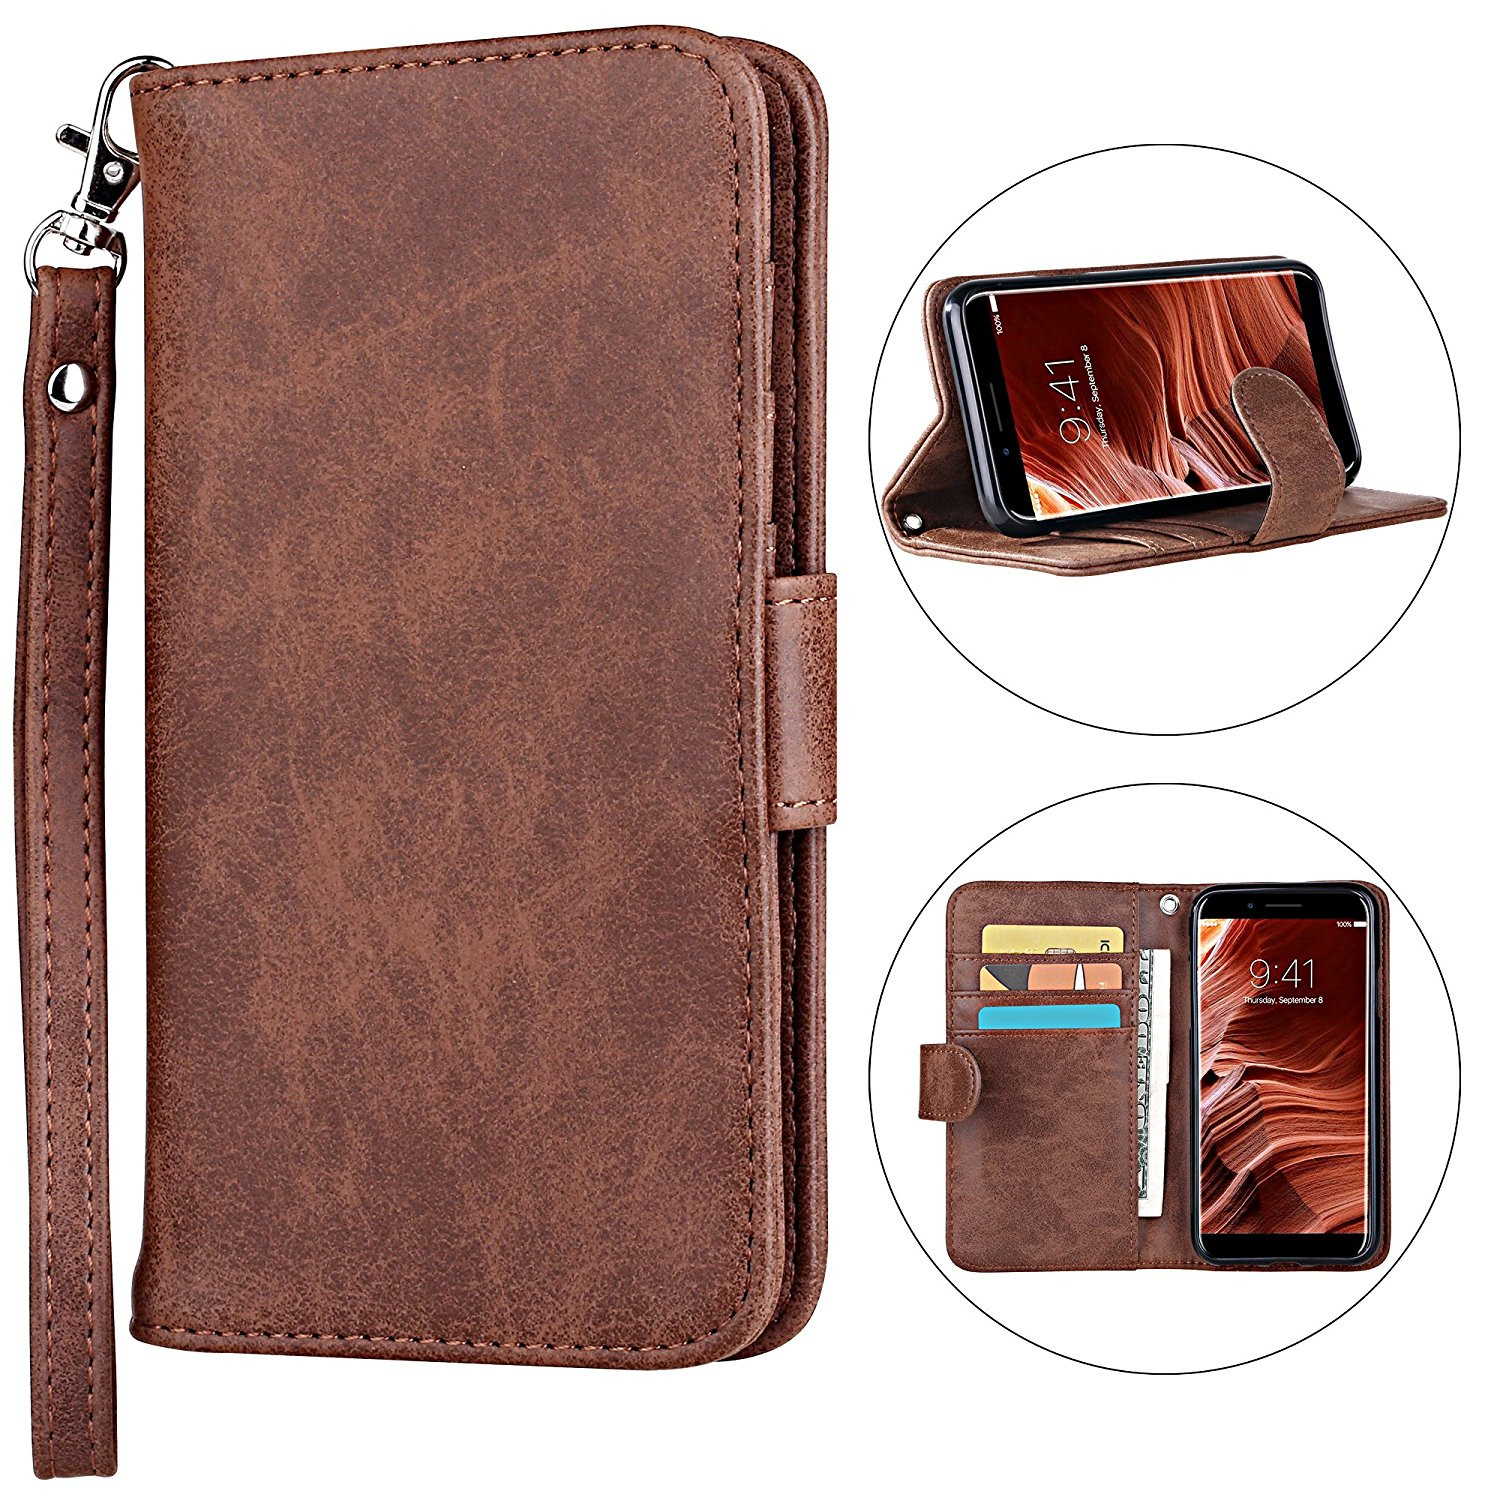 iPhone X Case [Cards Slot Pocket], ELV iPhone X Flip Case [PU Leather] Slim Folio Wallet Purse Protective Magnetic-Closer [Pull tab] Case Cover for Apple iPhone X - FTS ROSE GOLD